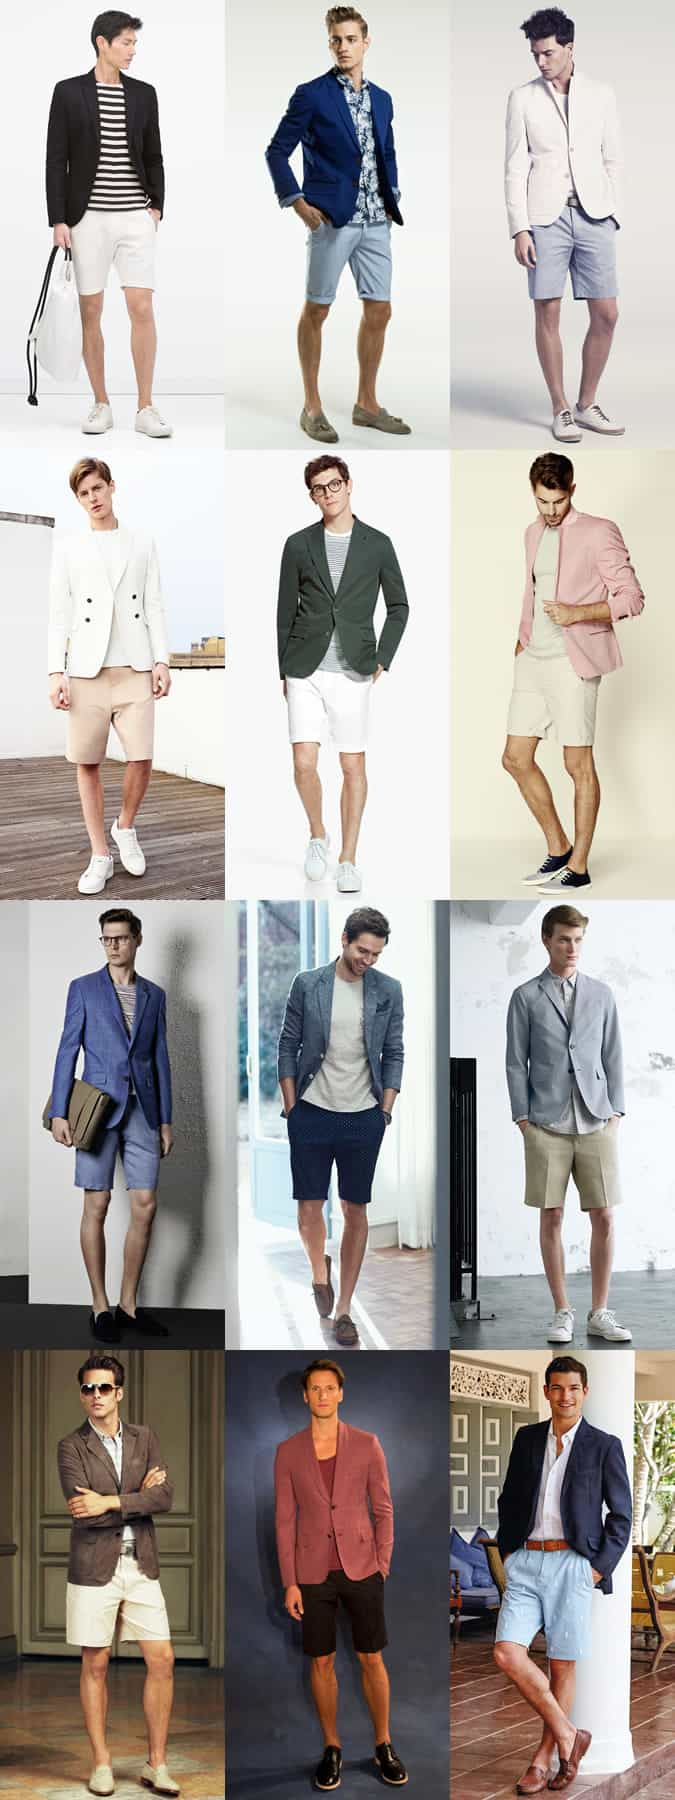 Men's Summer Shorts and Blazer Combination Outfit Inspiration Lookbook